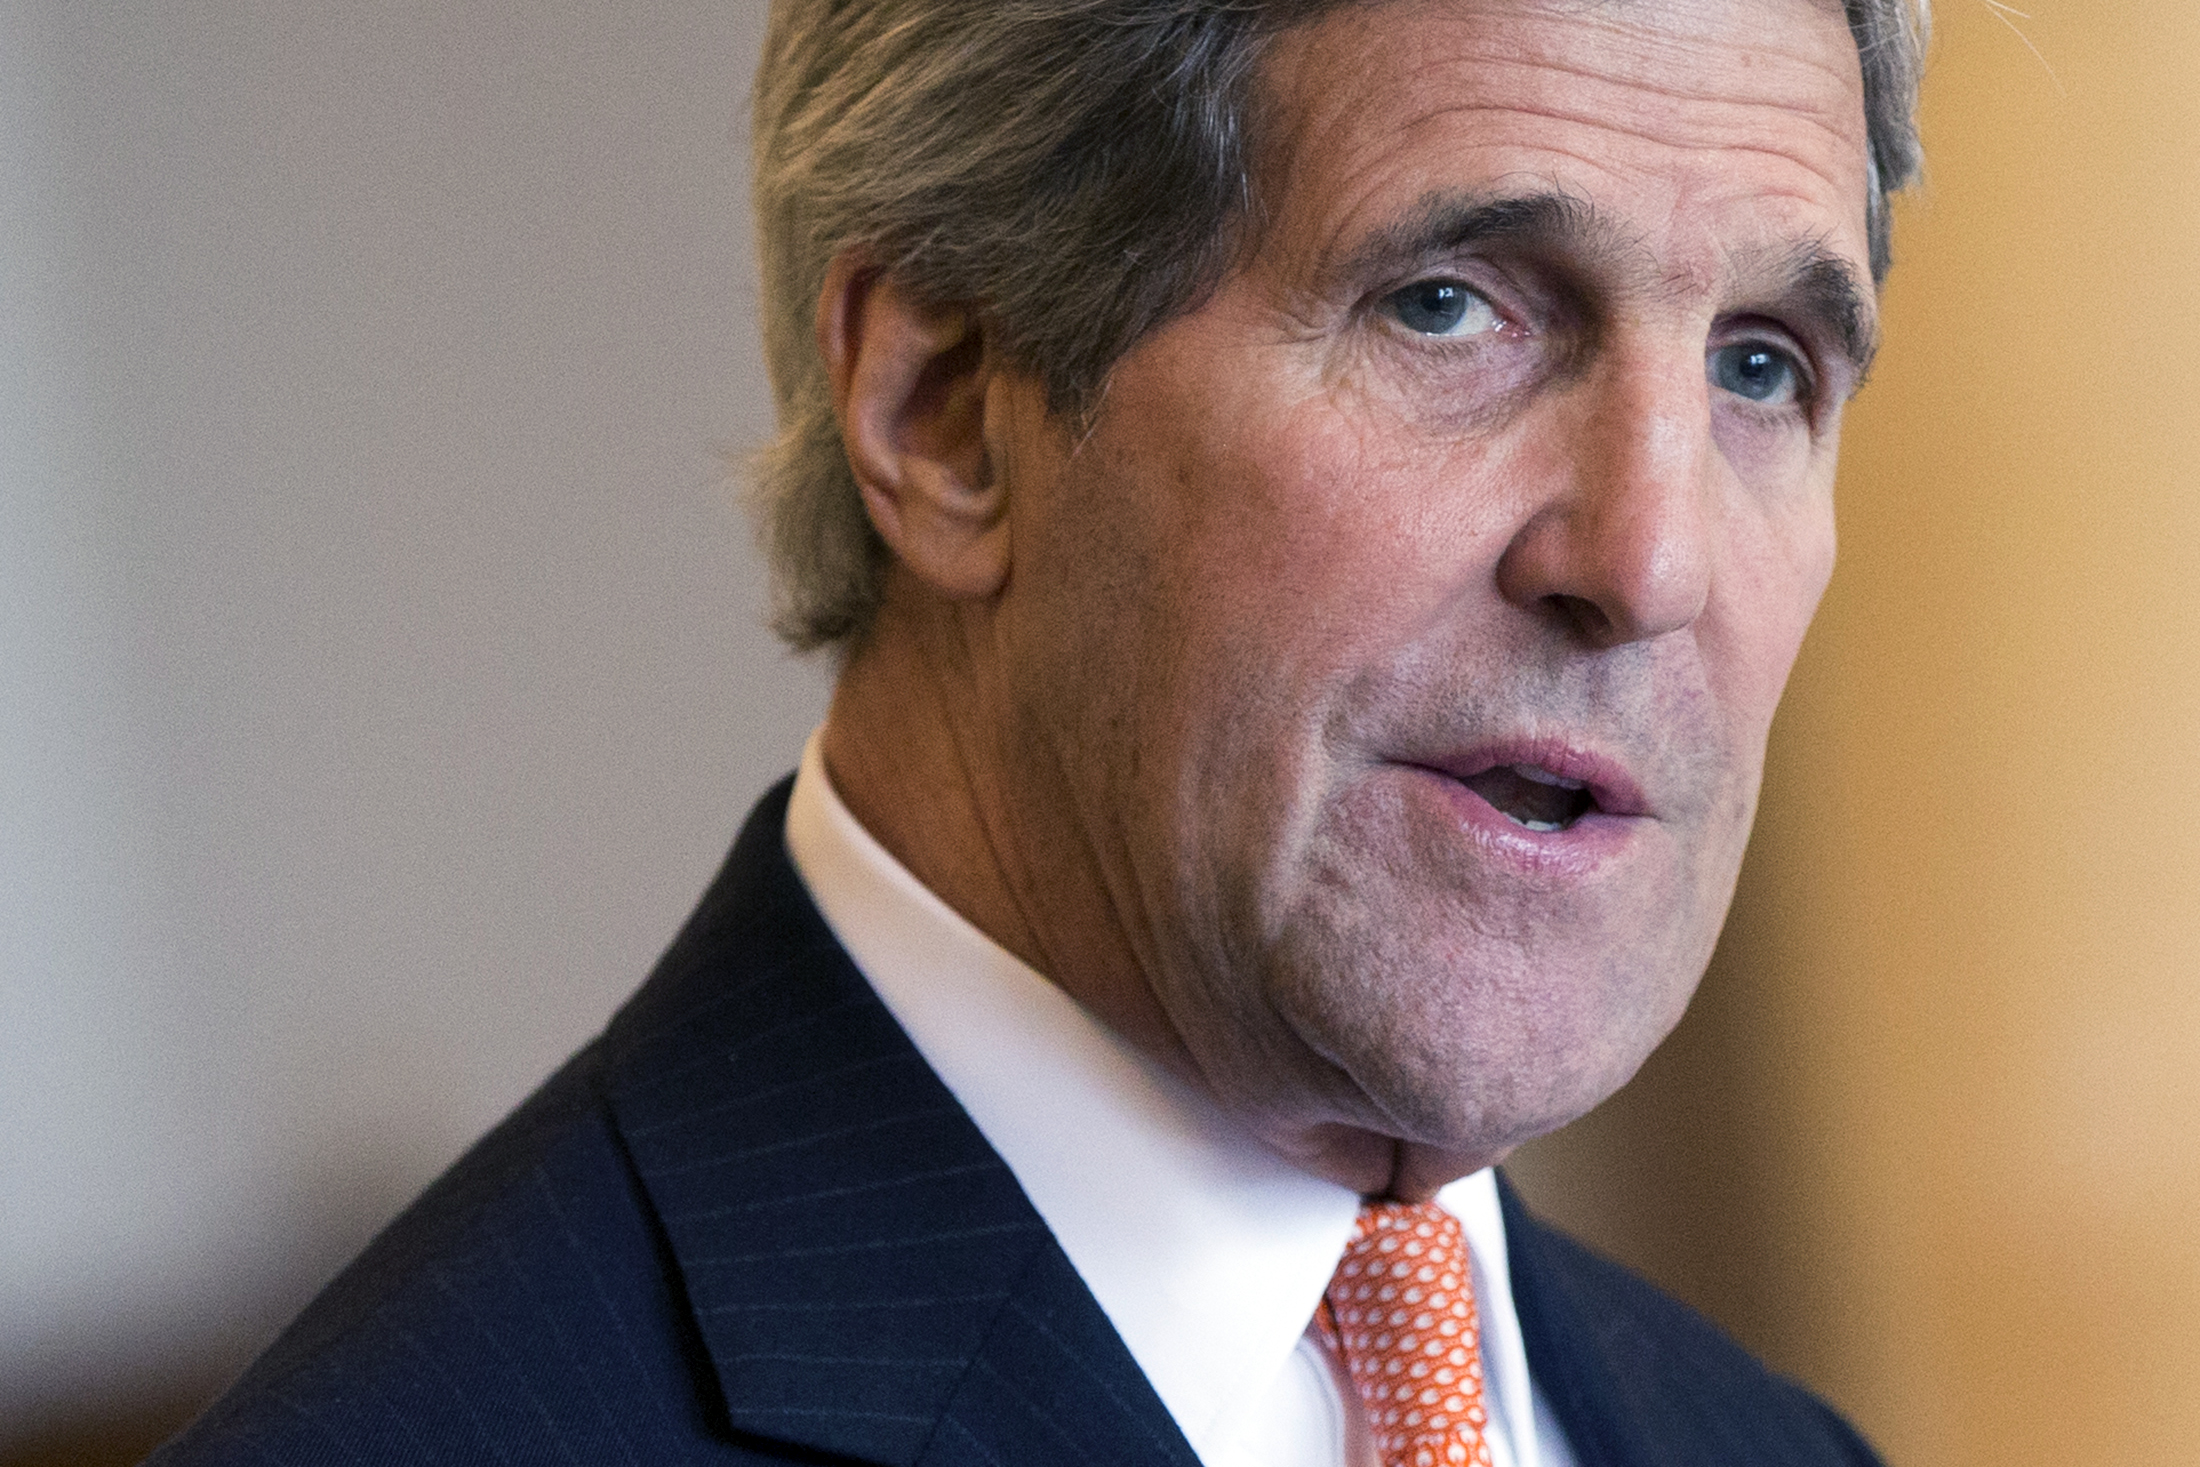 U.S. Secretary of State John Kerry delivers remarks in Montreux March 4, 2015. Significant gaps and important choices remain in talks on Iran's nuclear programme, Kerry said on Wednesday, after completing a round of talks over three days with Iranian...